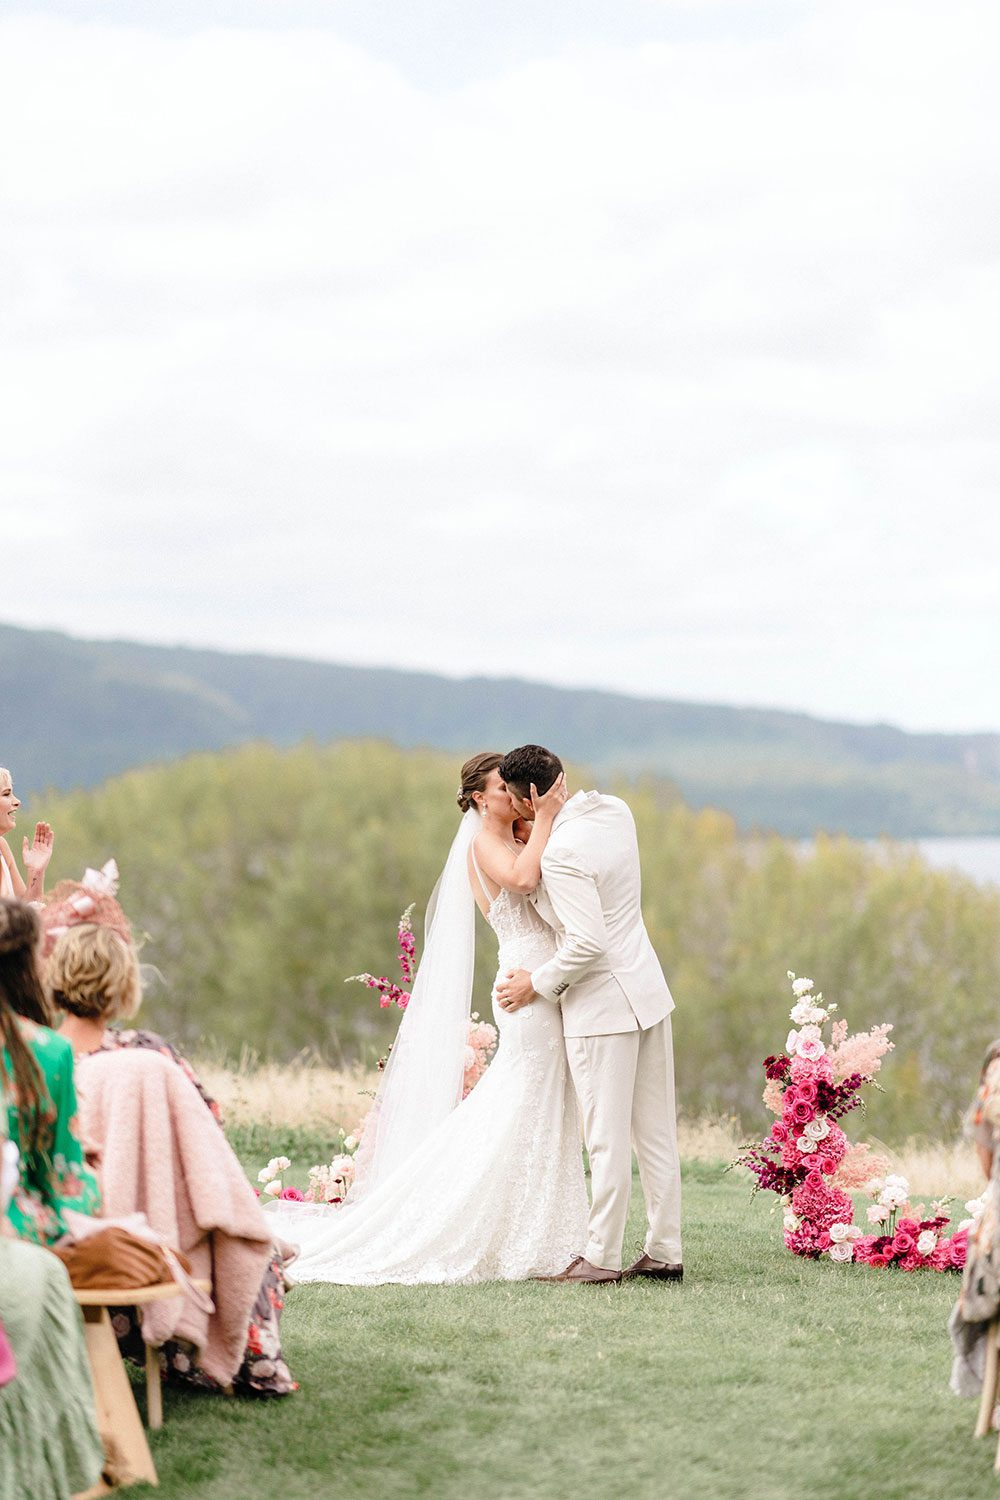 Bride wears bespoke E'More lace gown with boned bodice with hand beaded flower applique and full lace train by Auckland wedding dress maker Vinka designs - kissing groom at alter